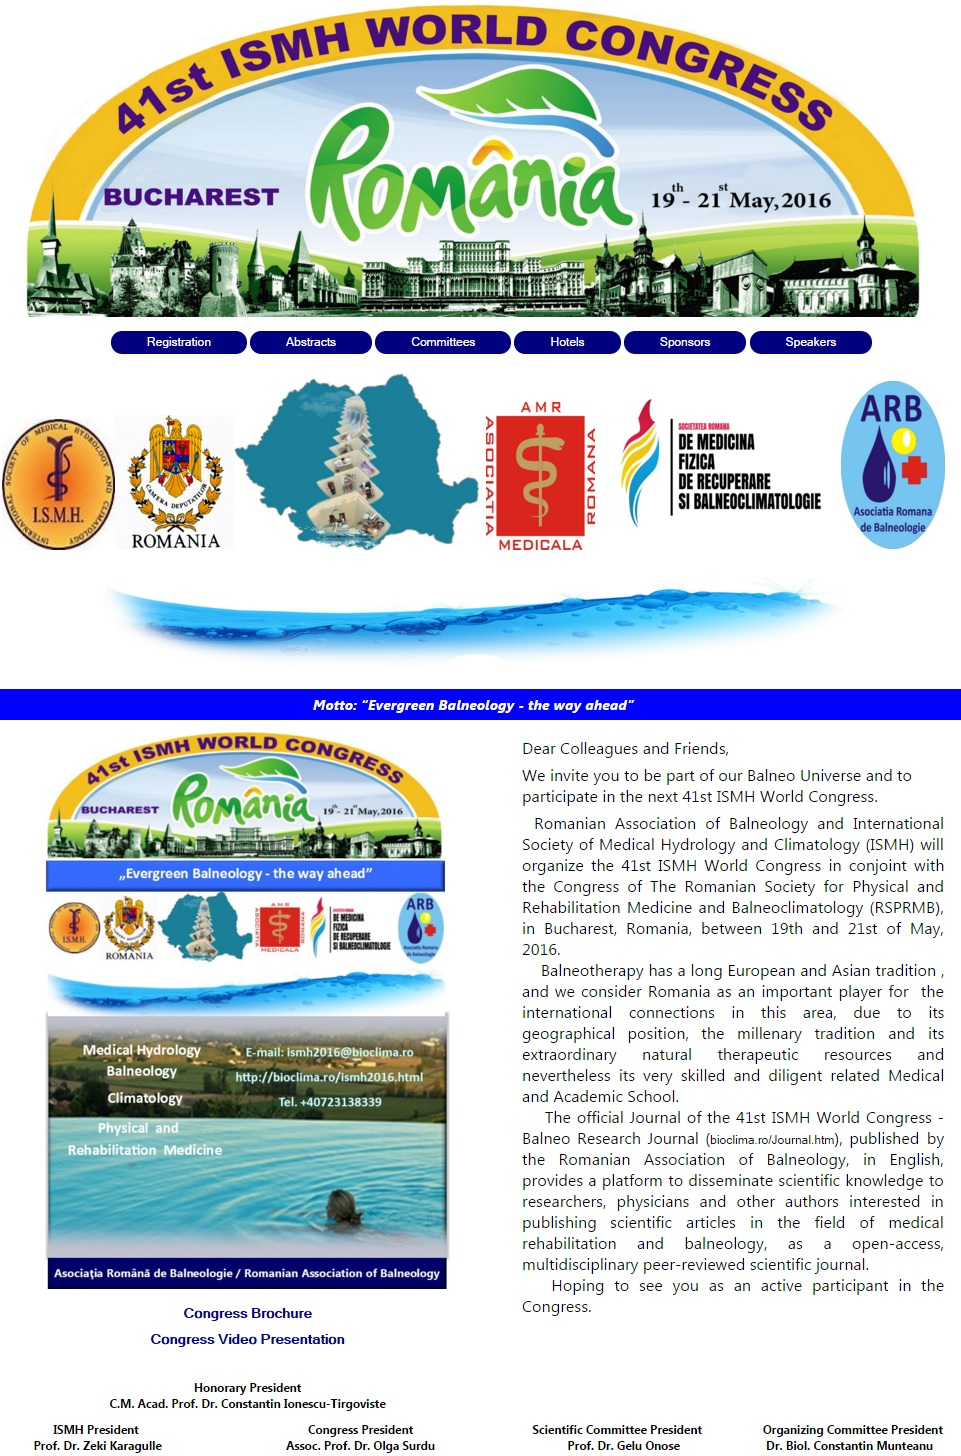 41st ISMH World Congress